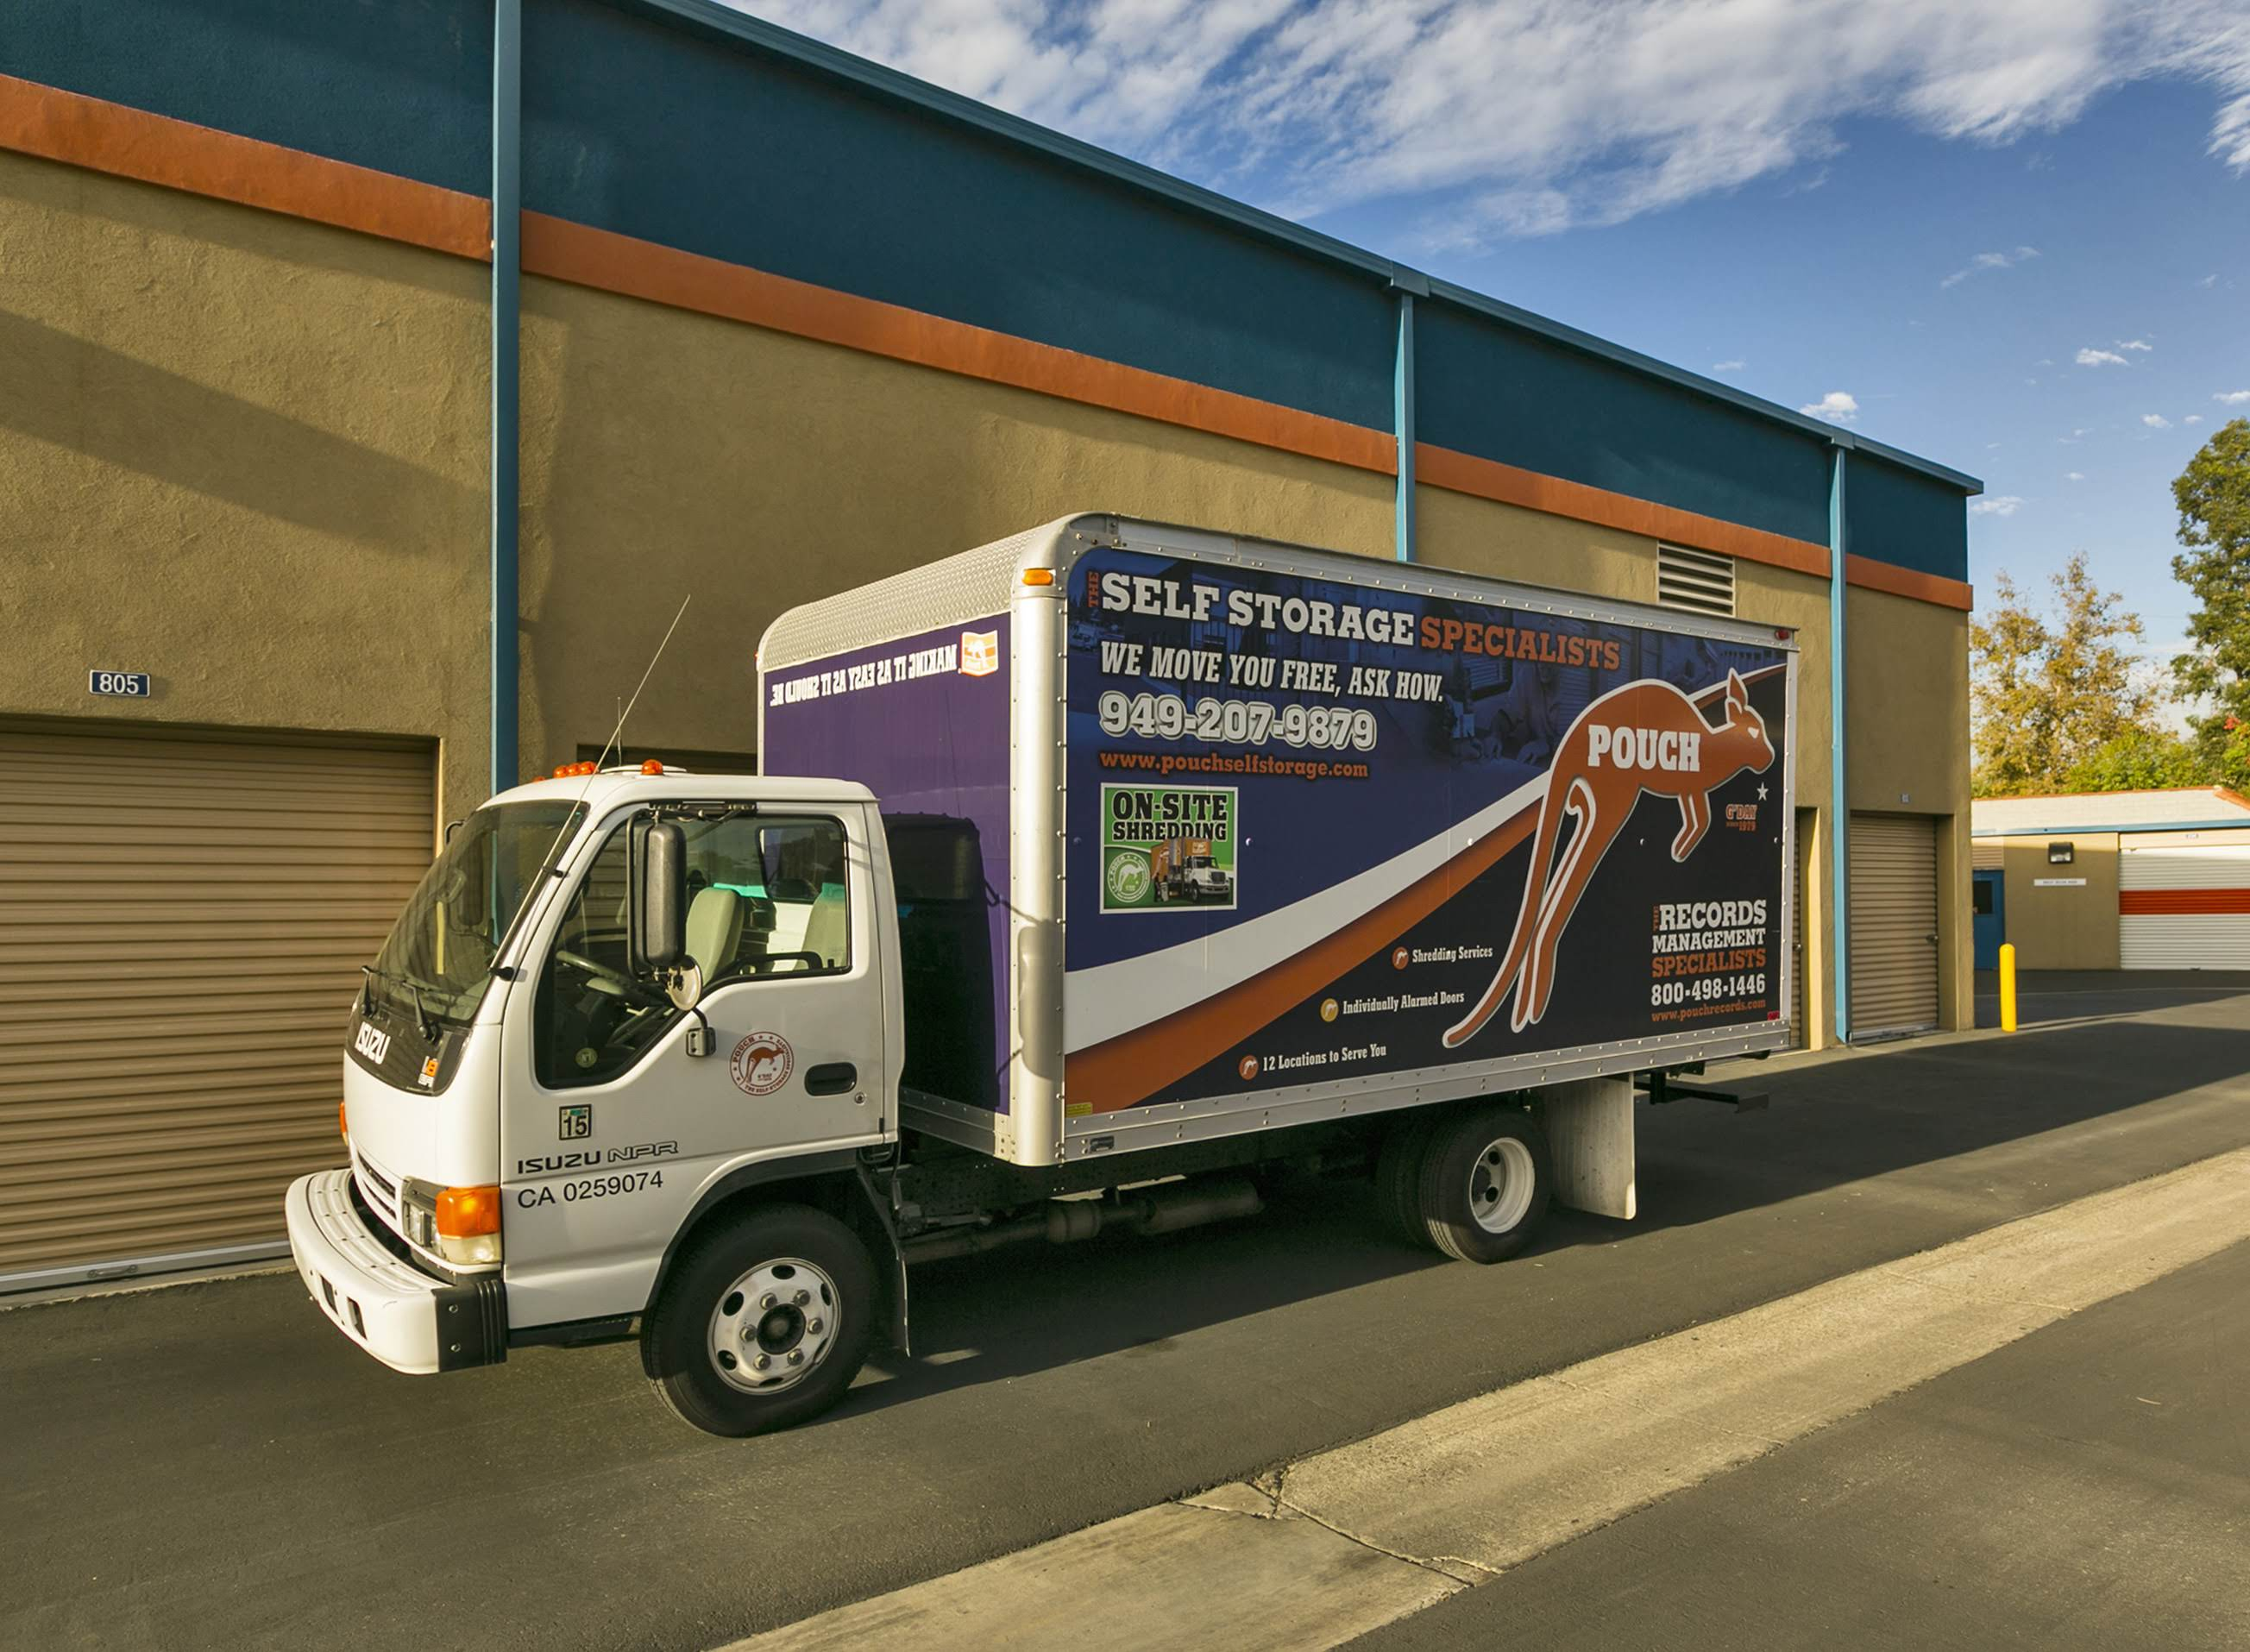 Pouch Self Storage Moving Truck